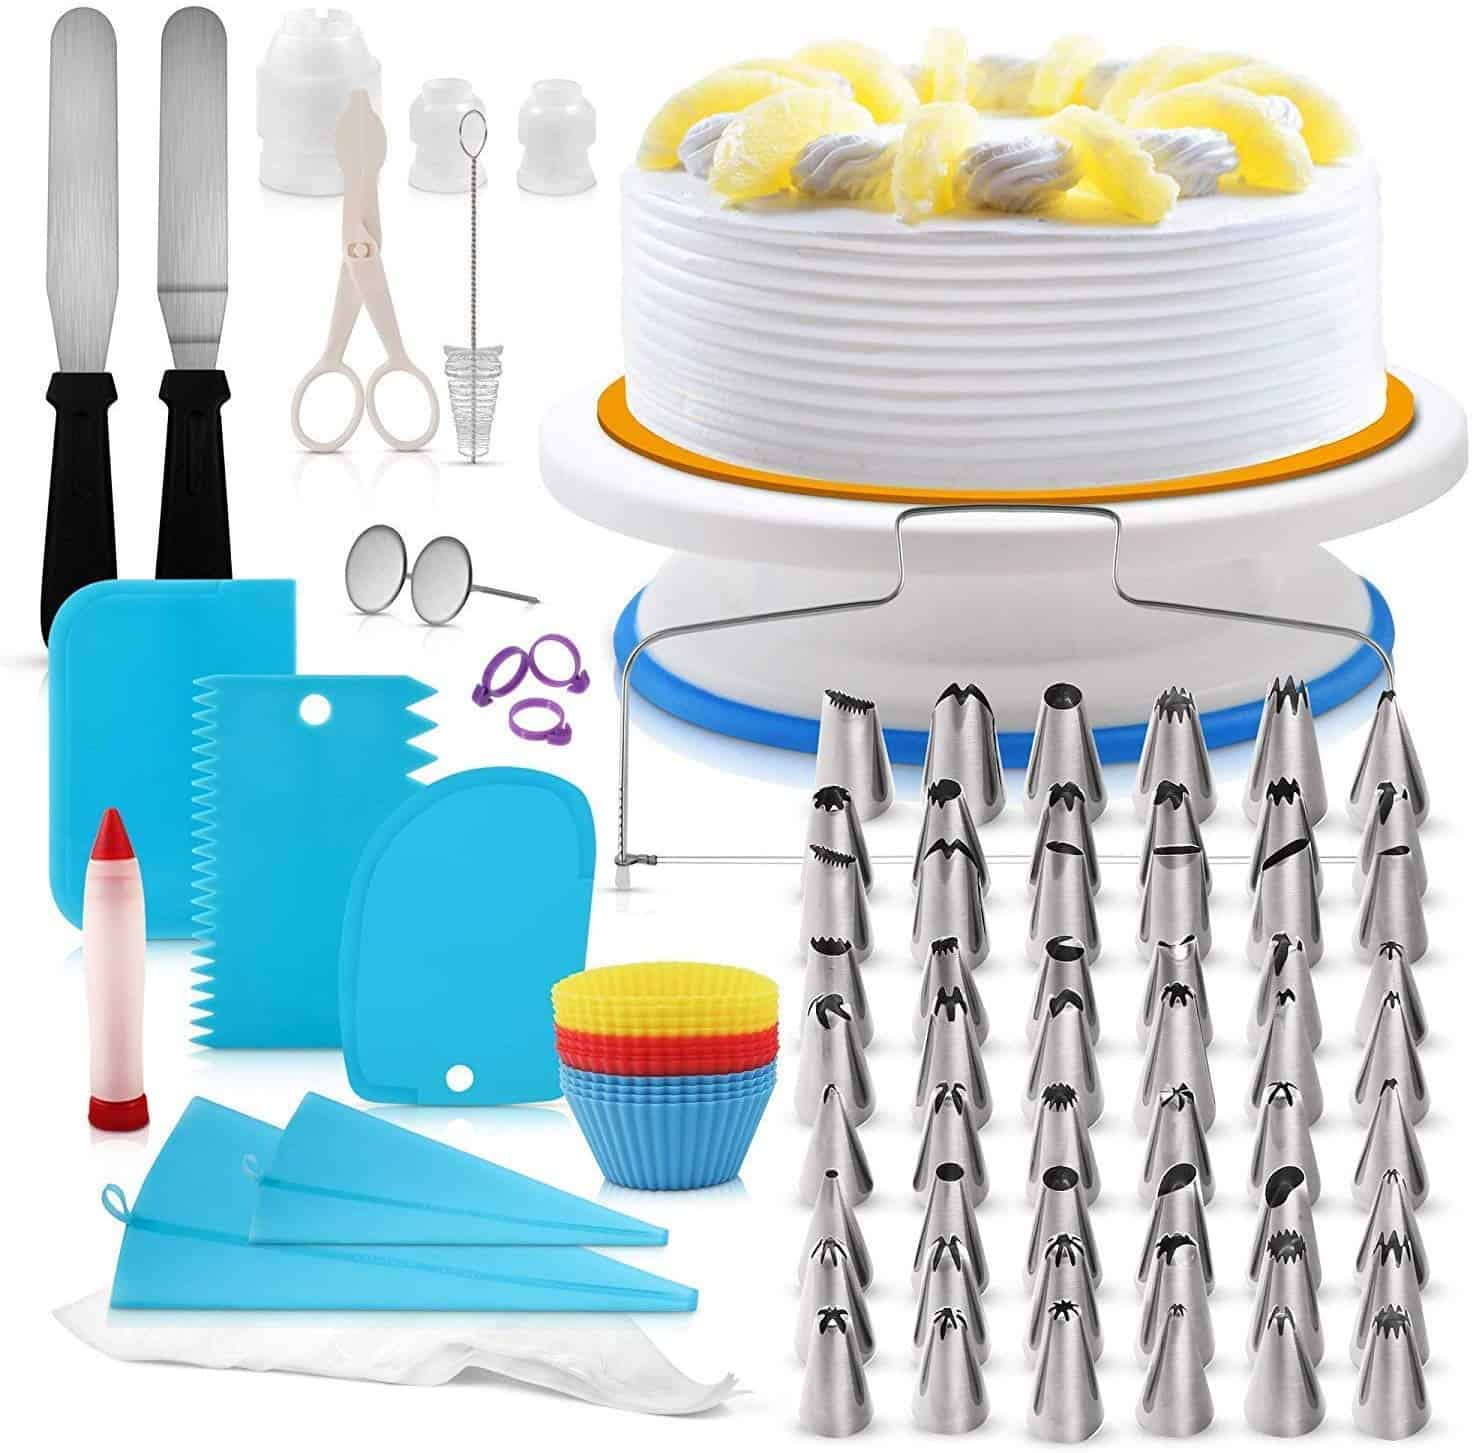 H3 innovations 118 piece cake decorating kit